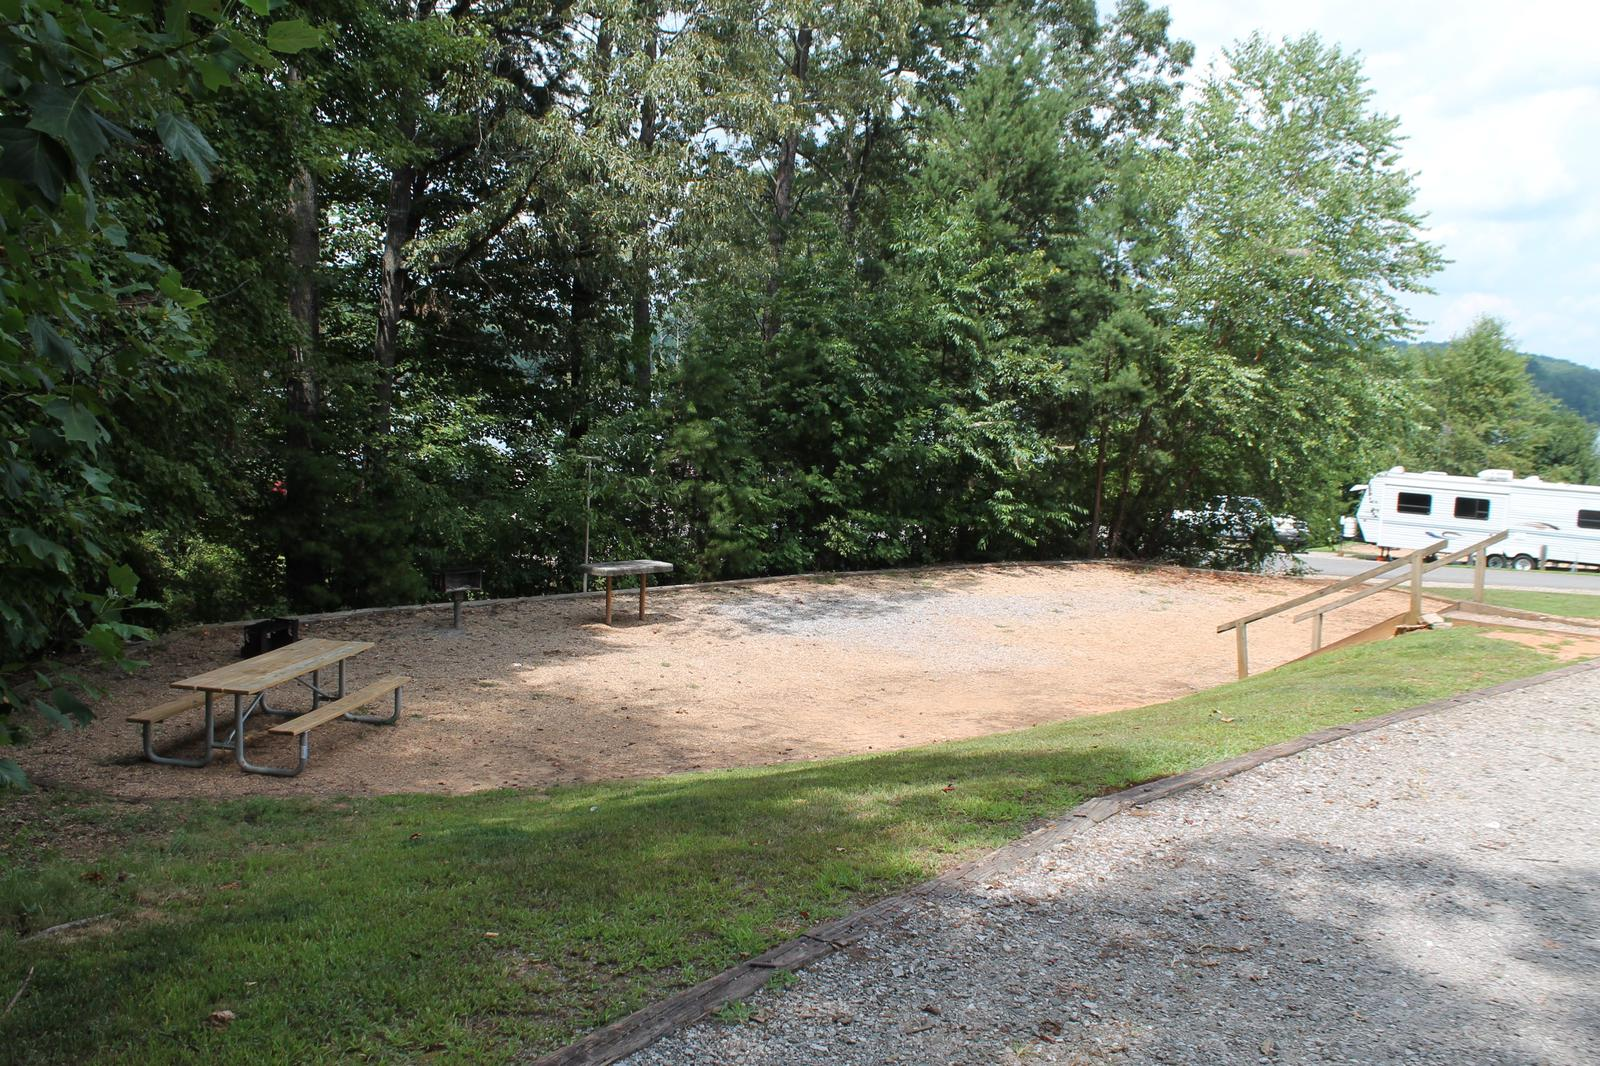 Gravel site with steps going down to table, grill, and fire pit surrounded by trees Gravel site with fire pit, table, and grill